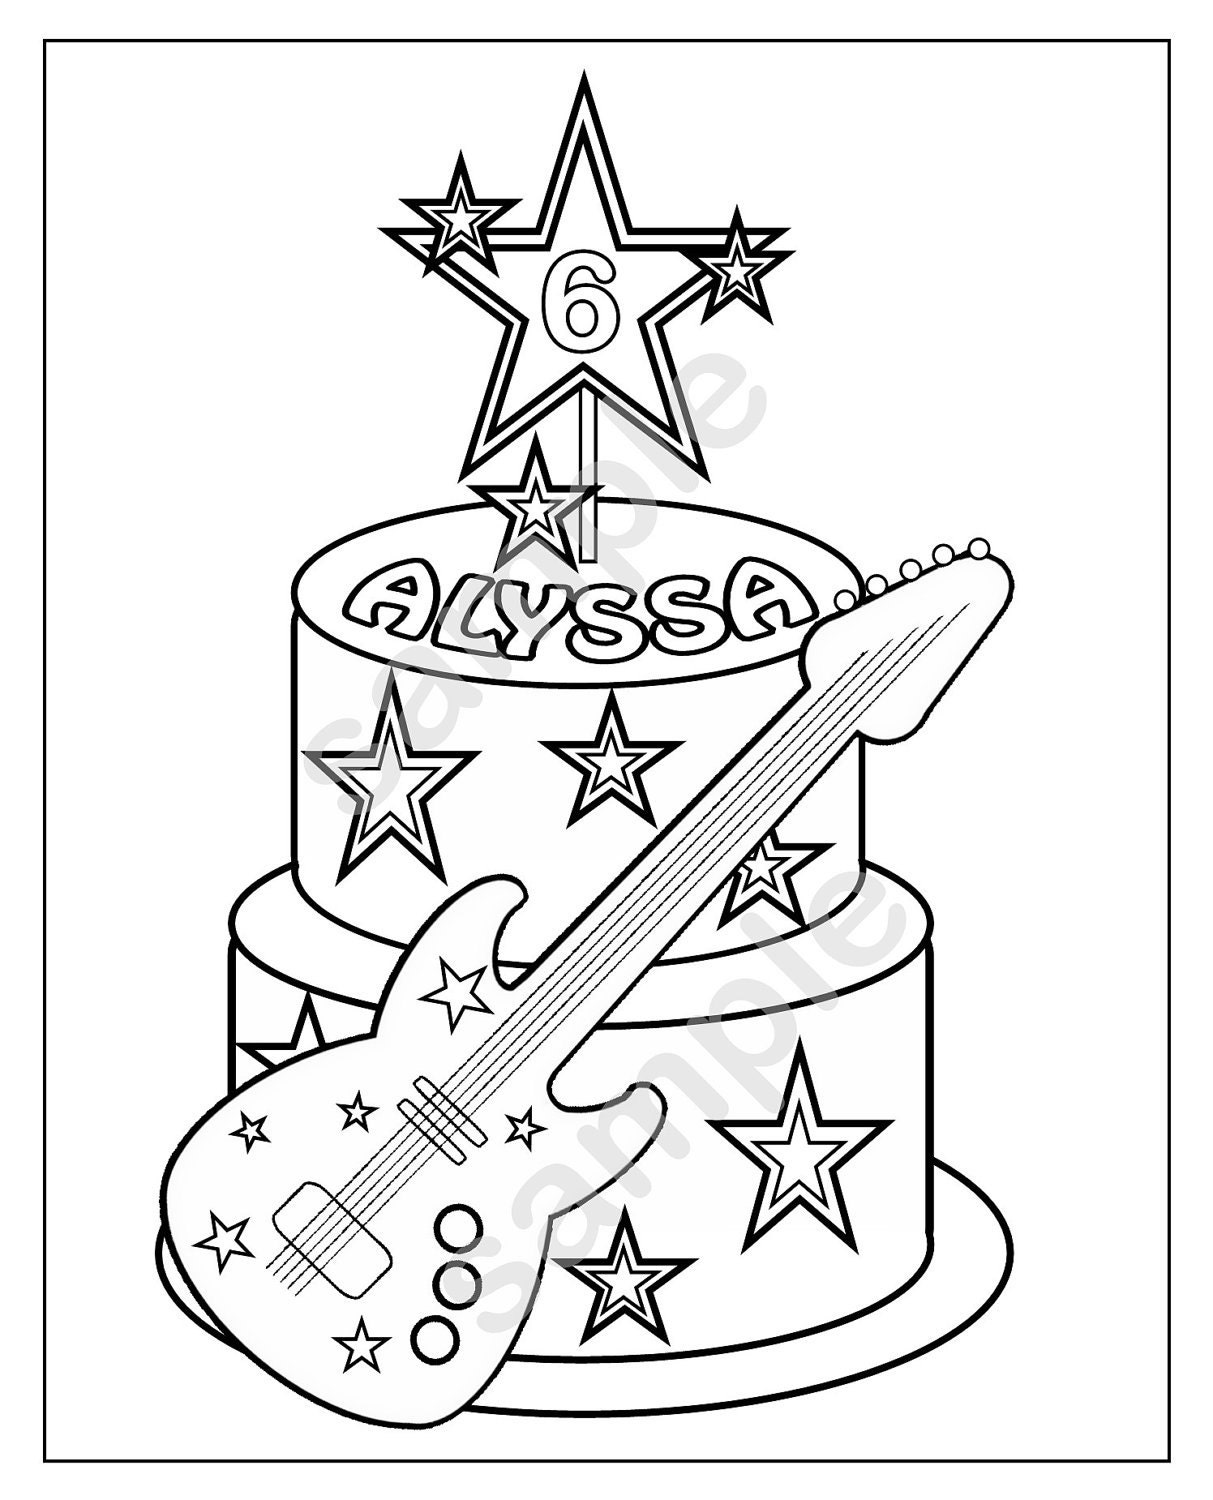 Personalized Printable Rockstar